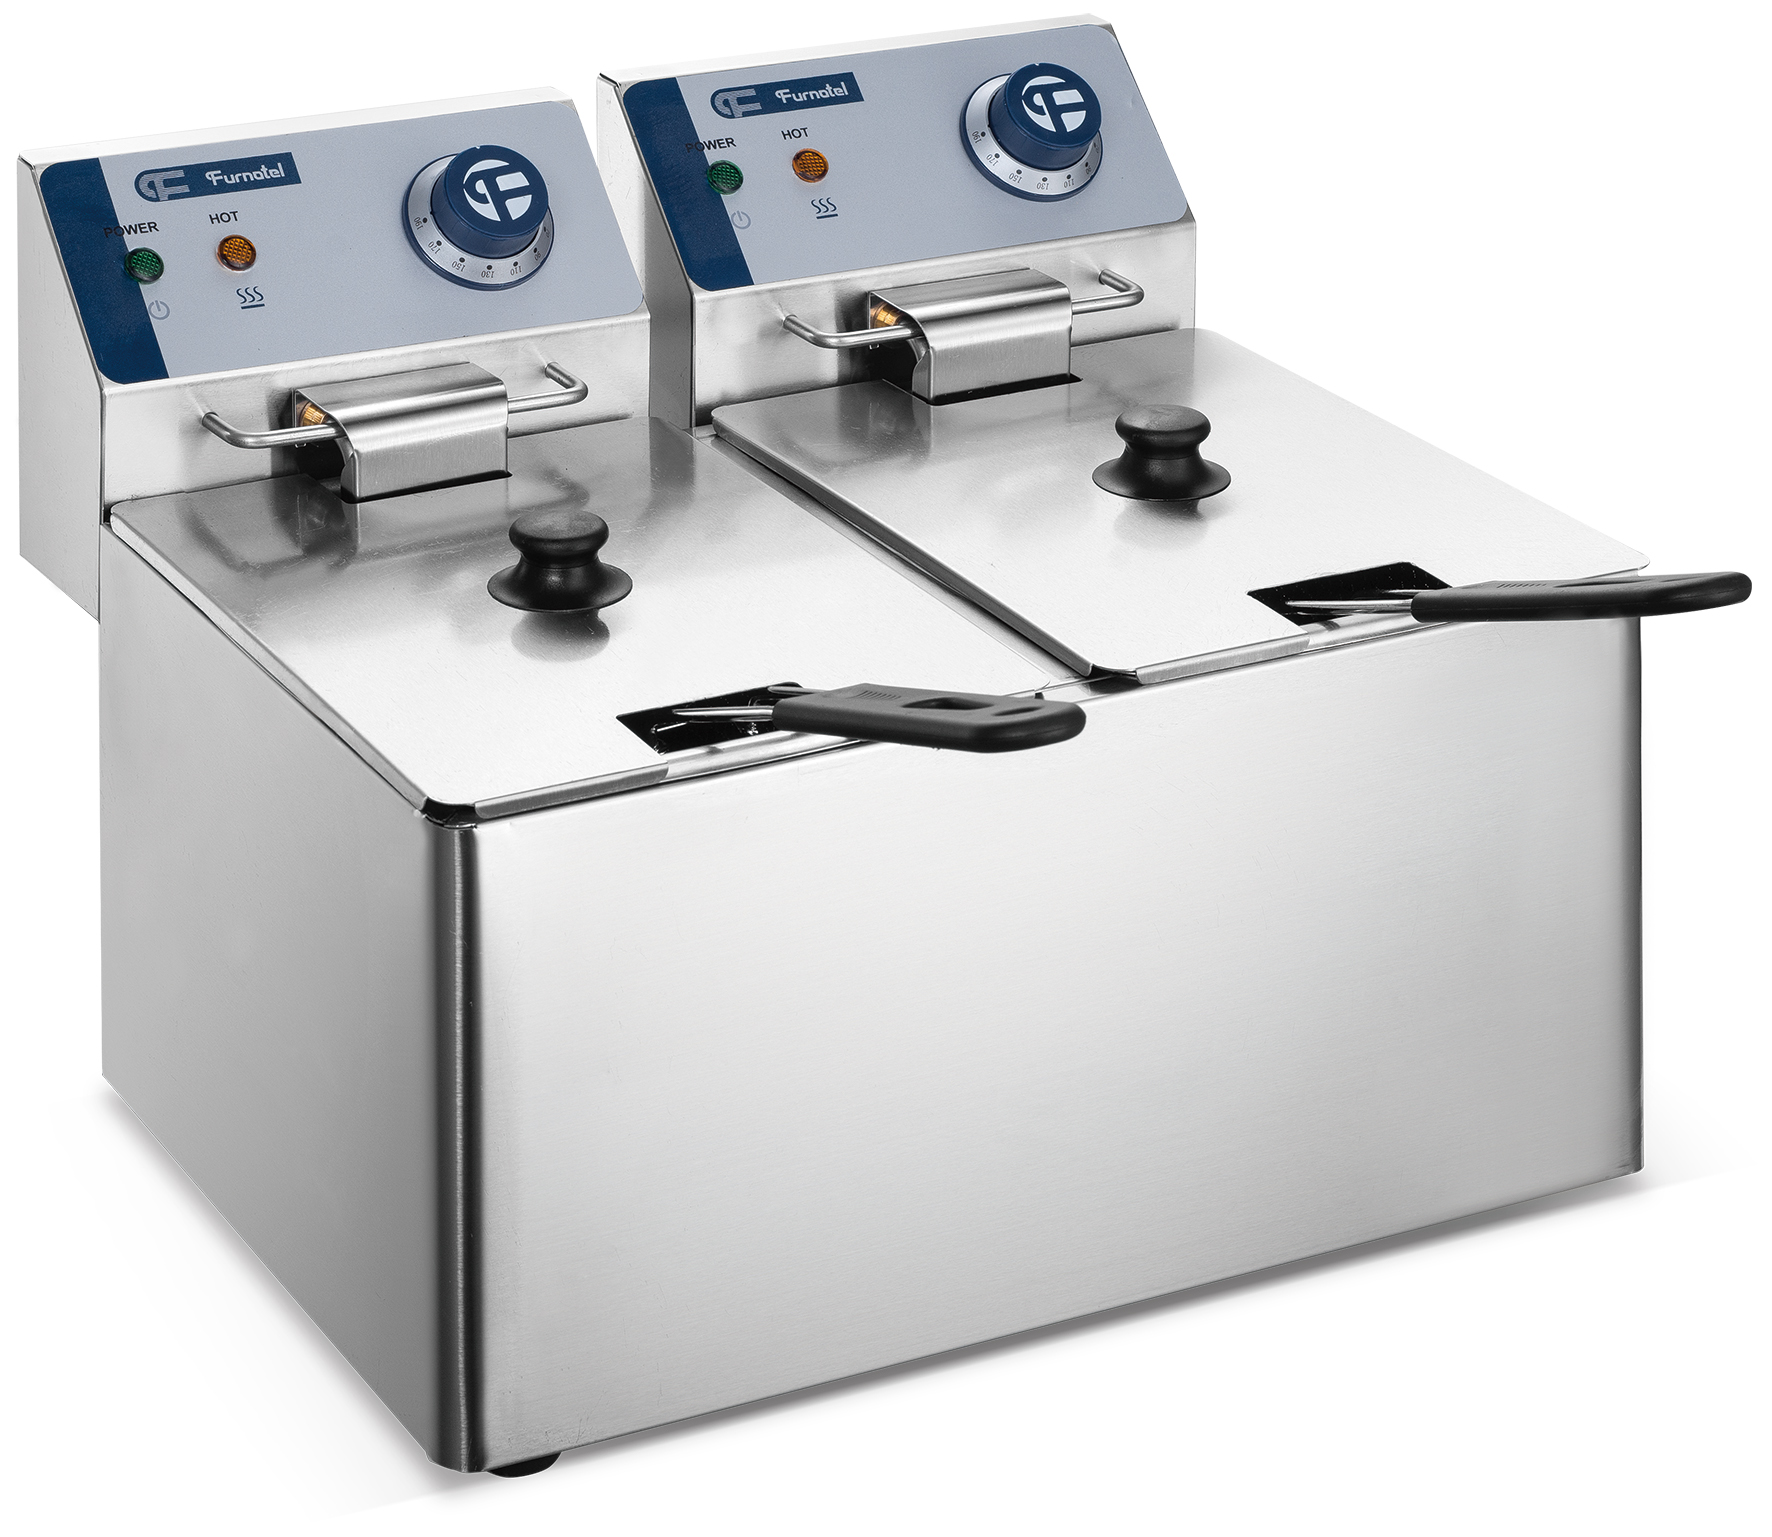 Chinese Factory Direct Cooking Equipment Commercial Chicken Deep Fryer Machine 8L*2 (In Stock)